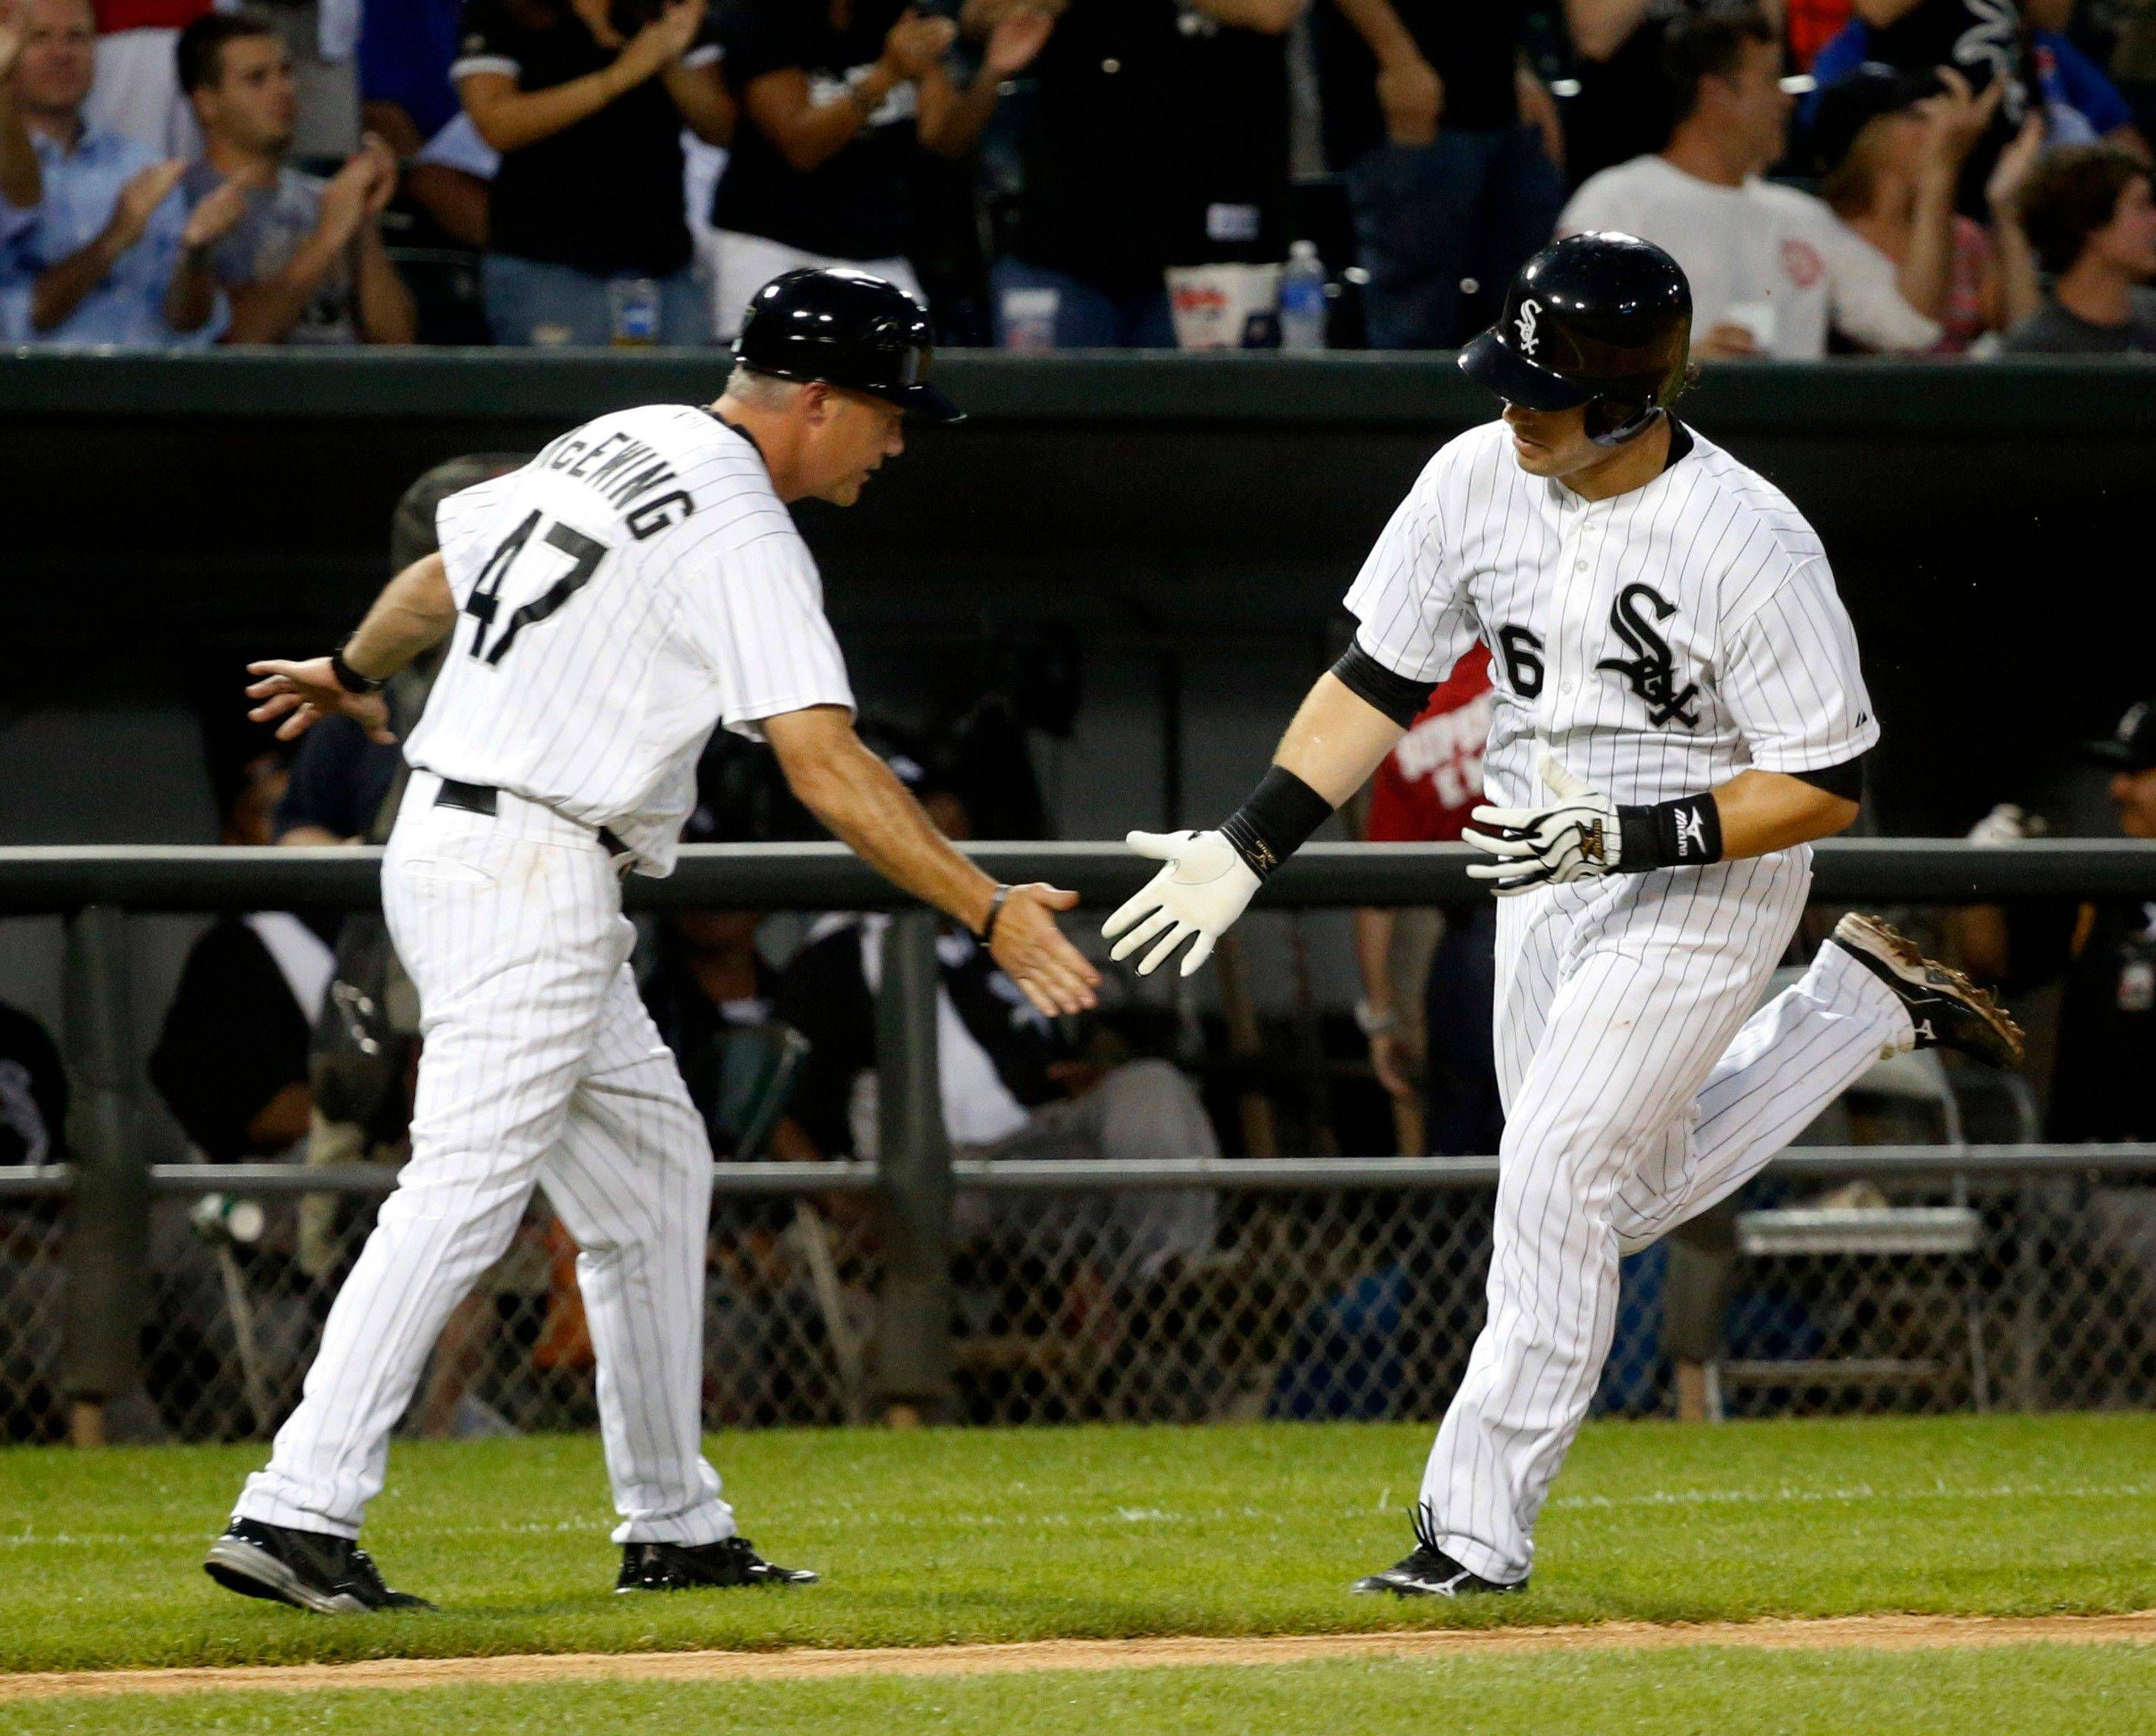 White Sox catcher Josh Phegley is greeted by third-base coach Joe McEwing after Phegley�s home run off Cubs starting pitcher Matt Garza during the third inning of an interleague baseball game Monday night at U.S. Cellular Field.